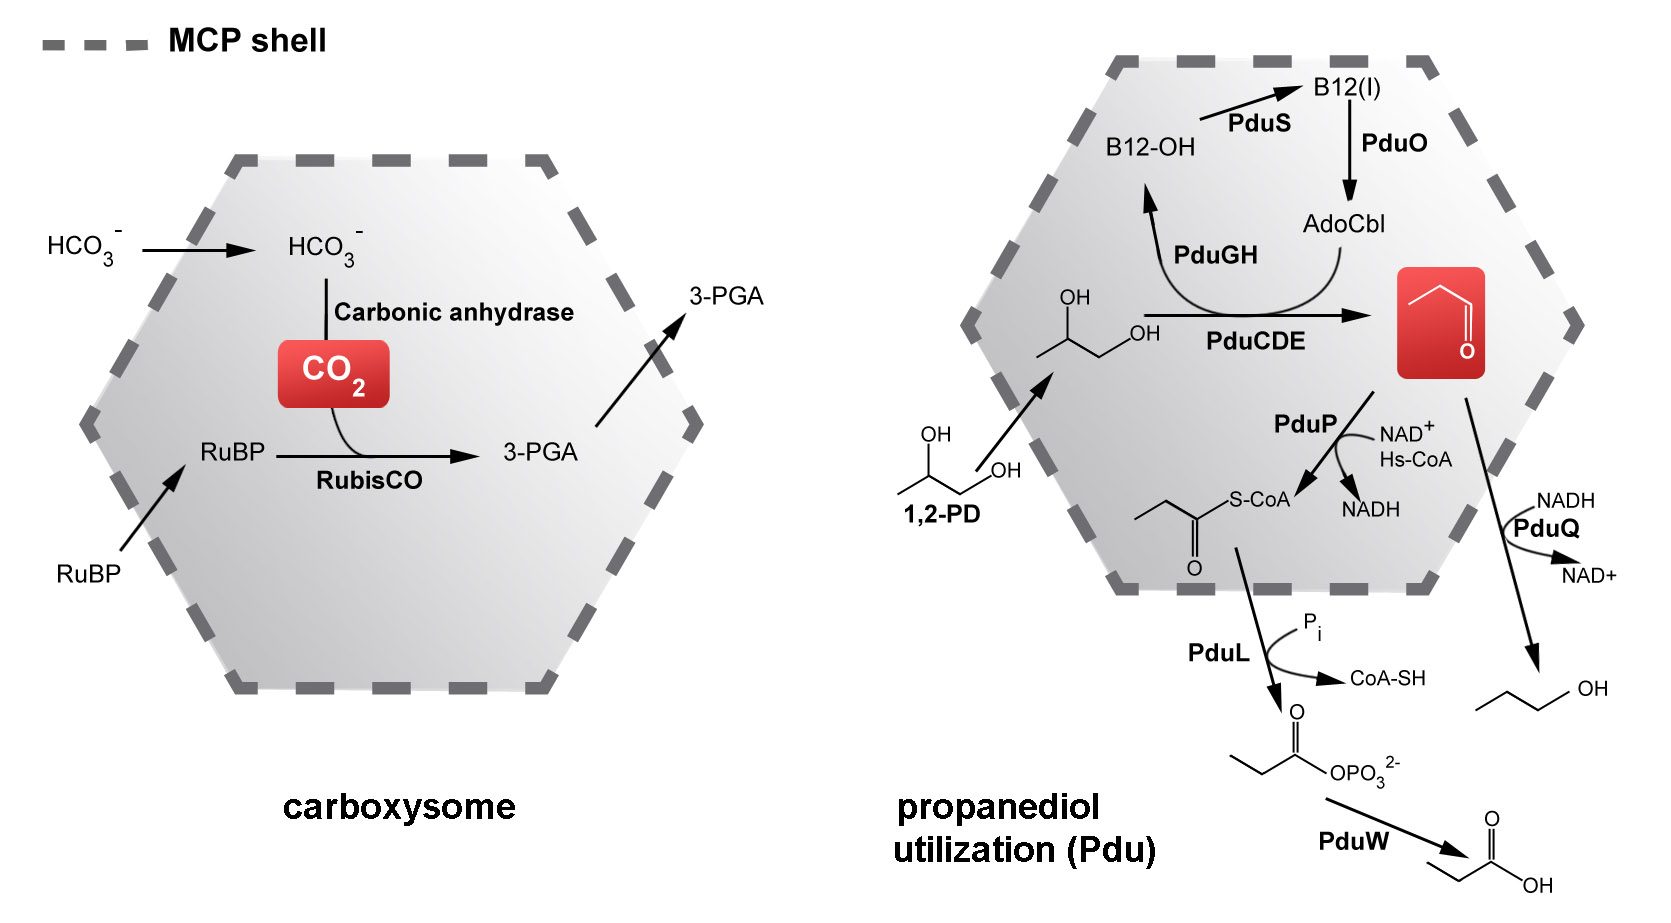 Metabolic functions of two kinds of microcompartments. (Adapted from Yeates, Crowley, & Tanaka, 2010)